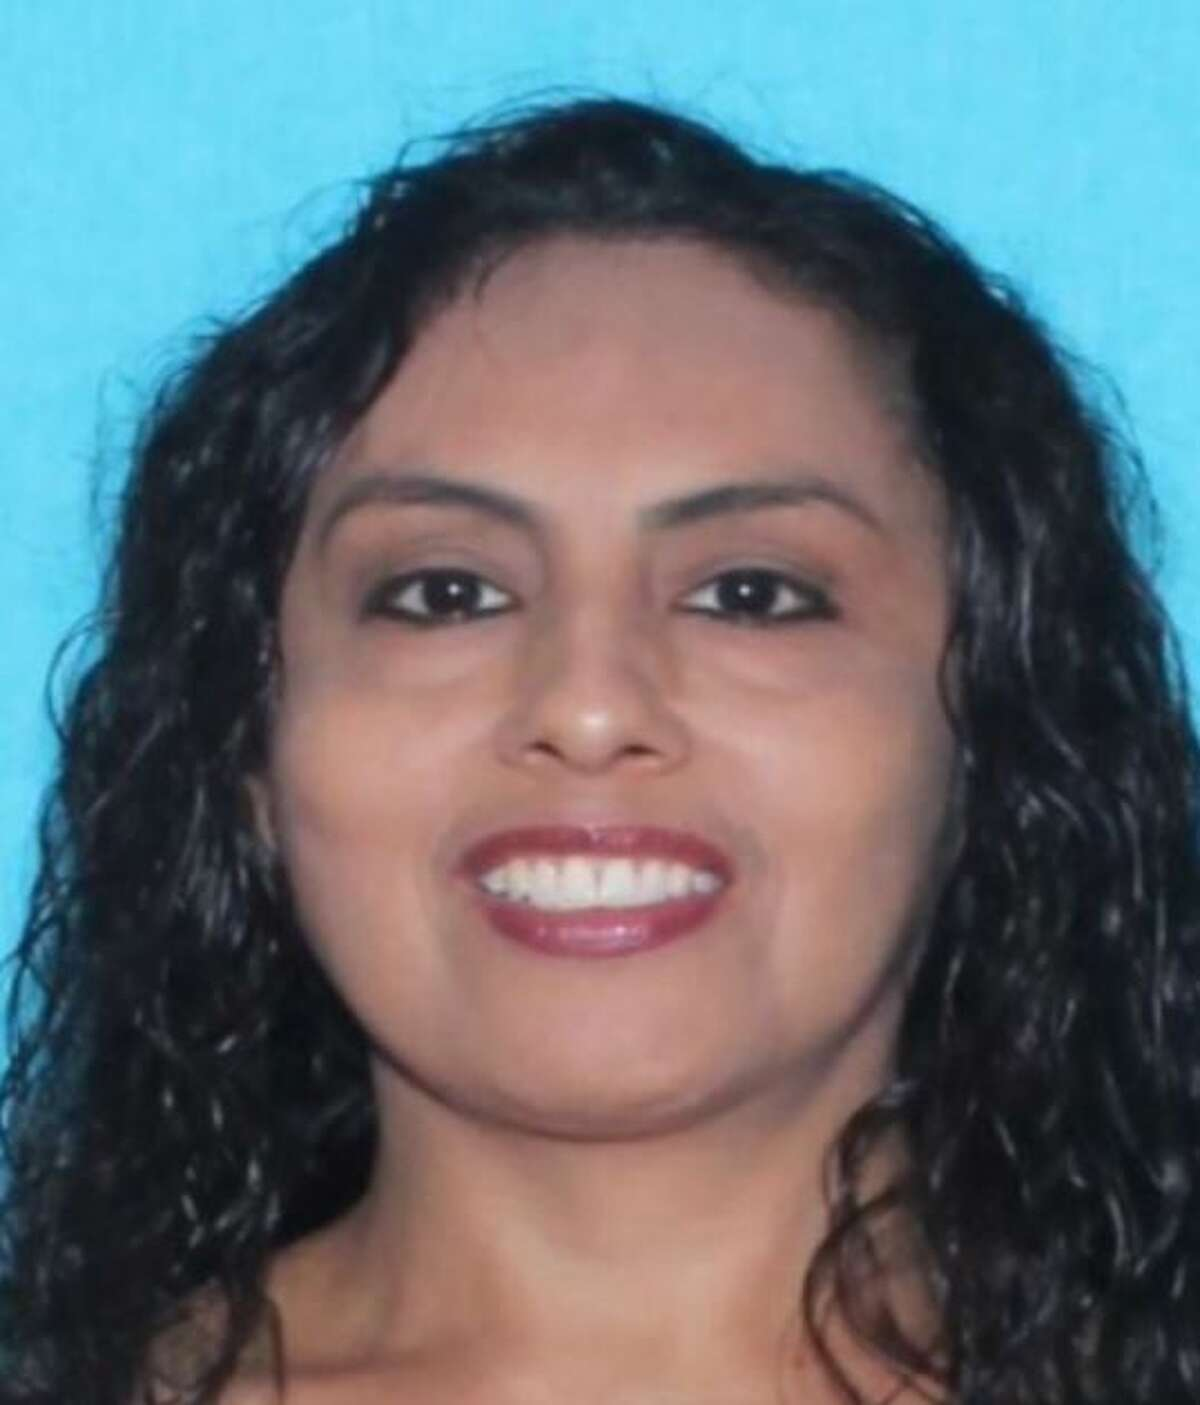 Maria Gallegos, 45, was found dead at her home on Aug. 17, 2016, in Hidalgo County.